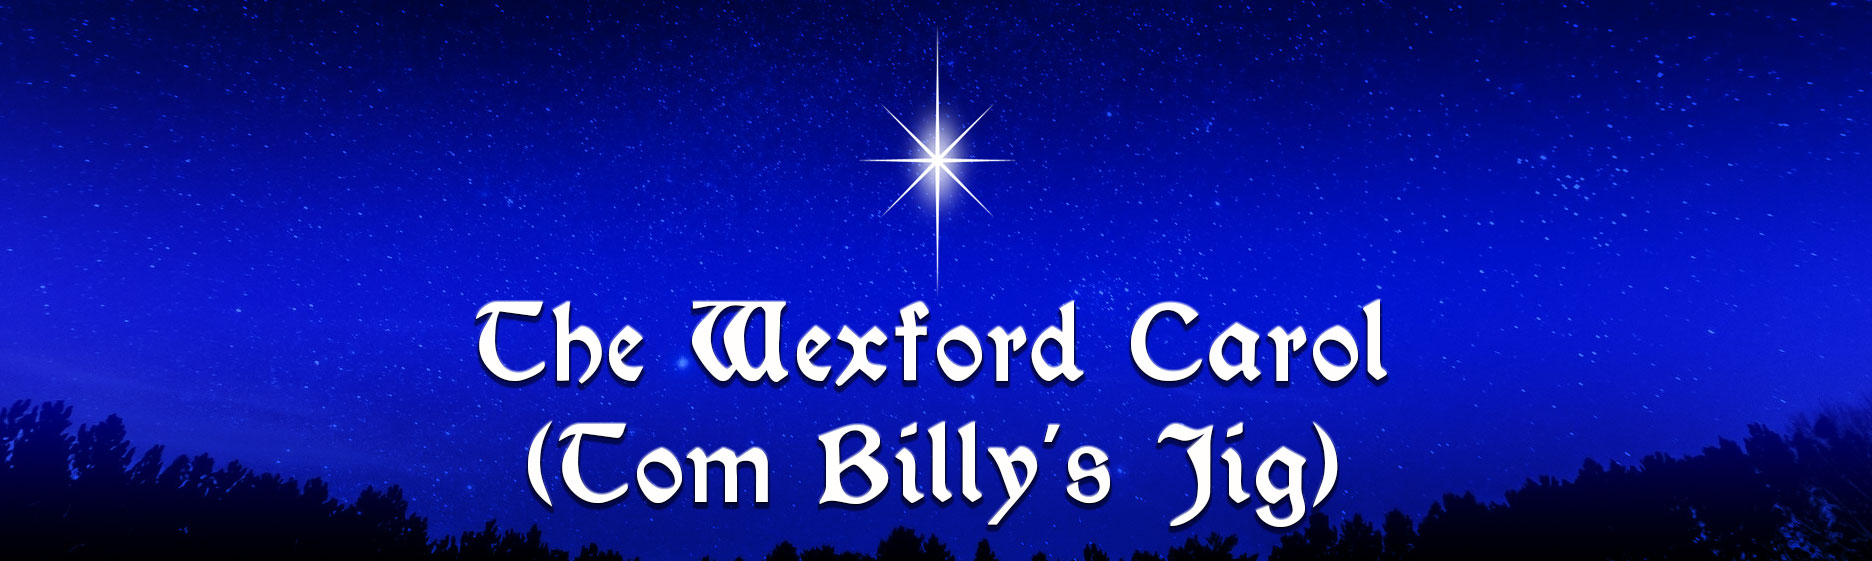 Debra Lyn - The Wexford Carol - Traditional Irish Christmas Carol